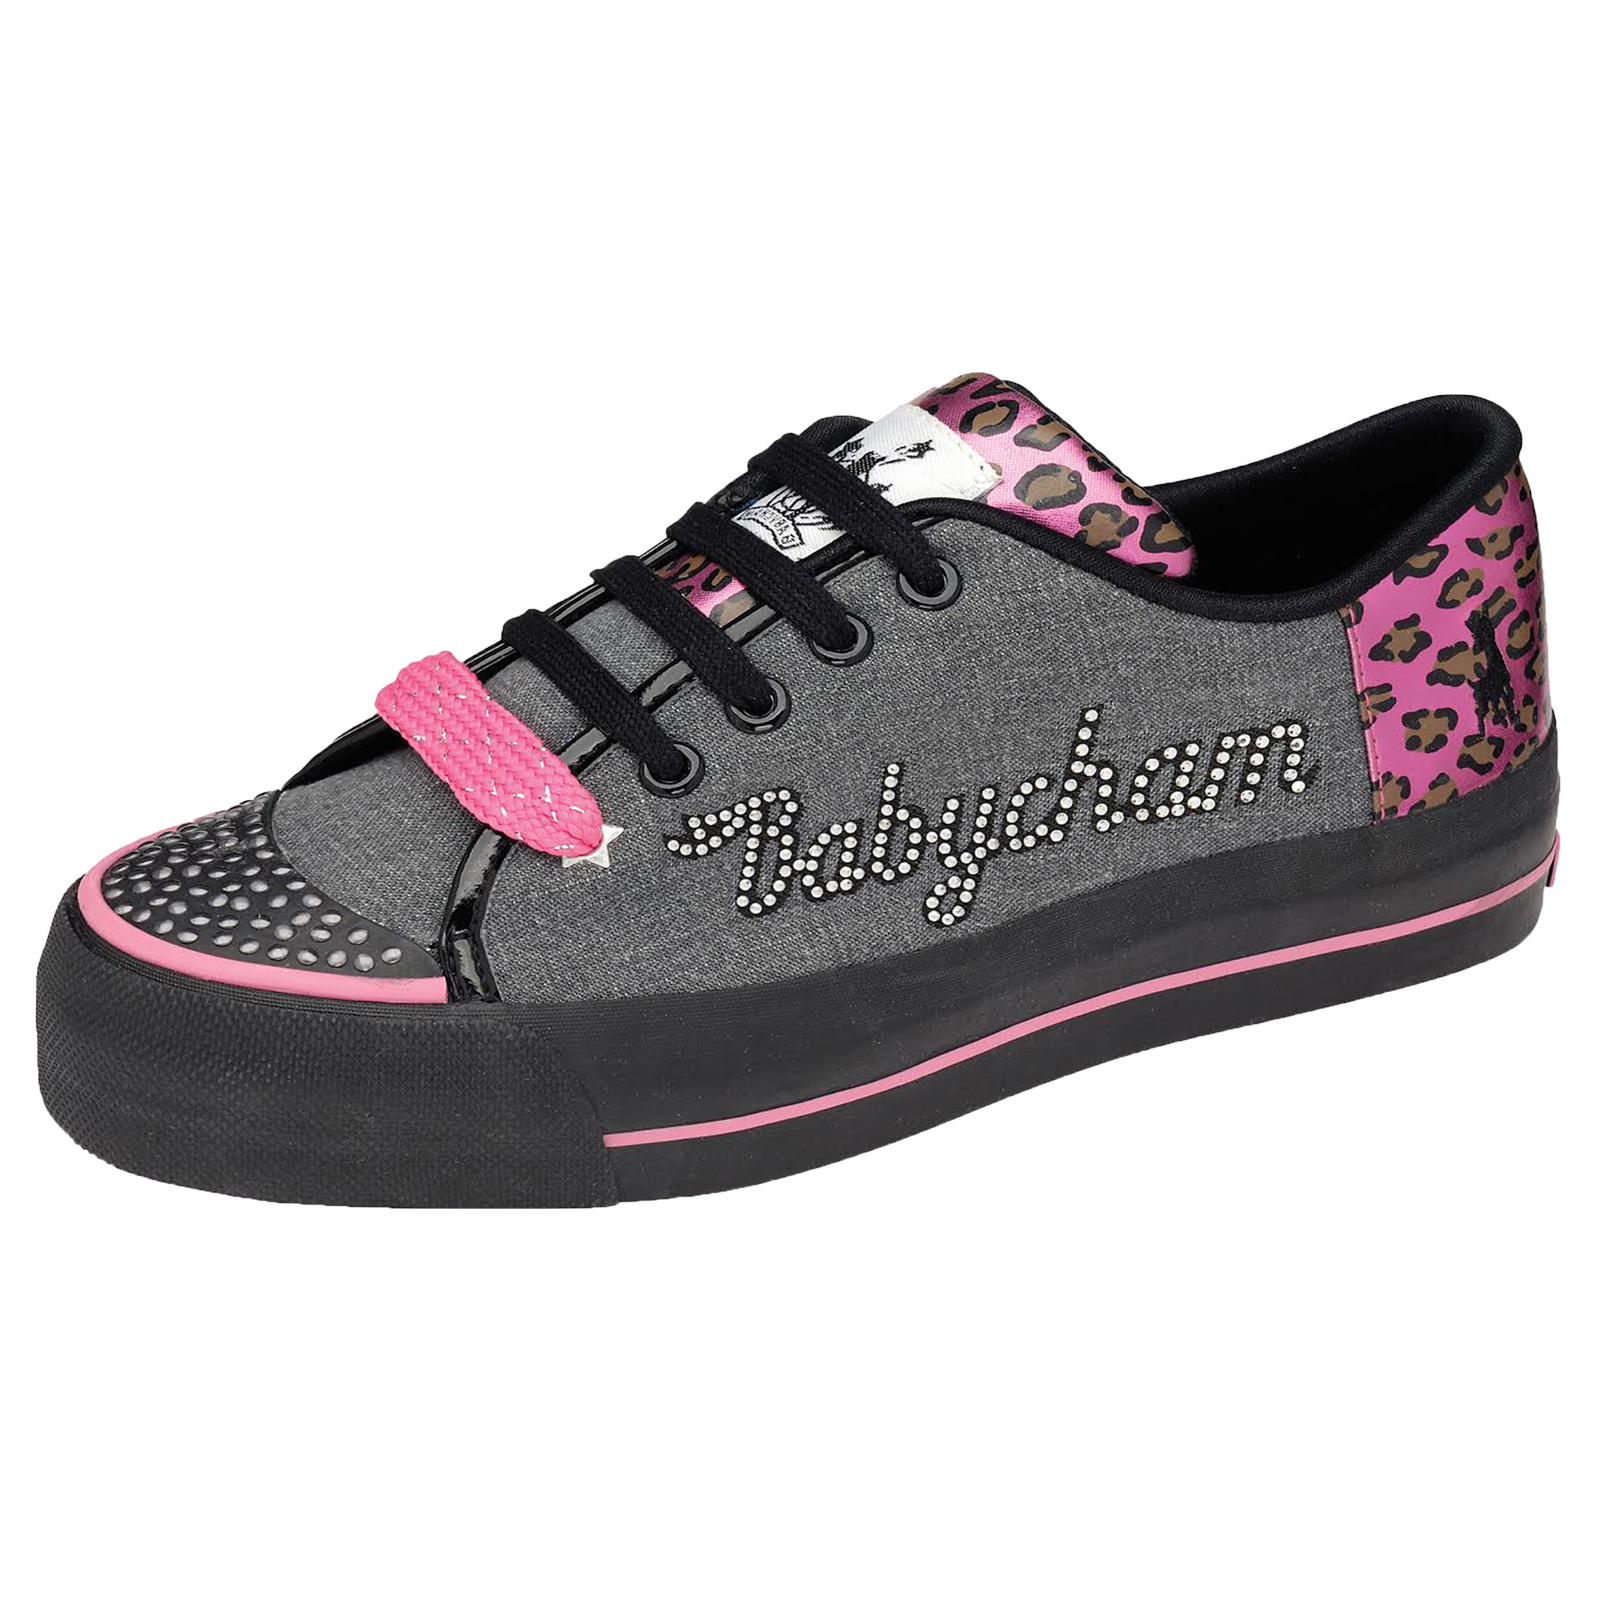 Shop discounted girls trainers & more on tentrosegaper.ga Save money on millions of top products at low prices, worldwide for over 10 years.